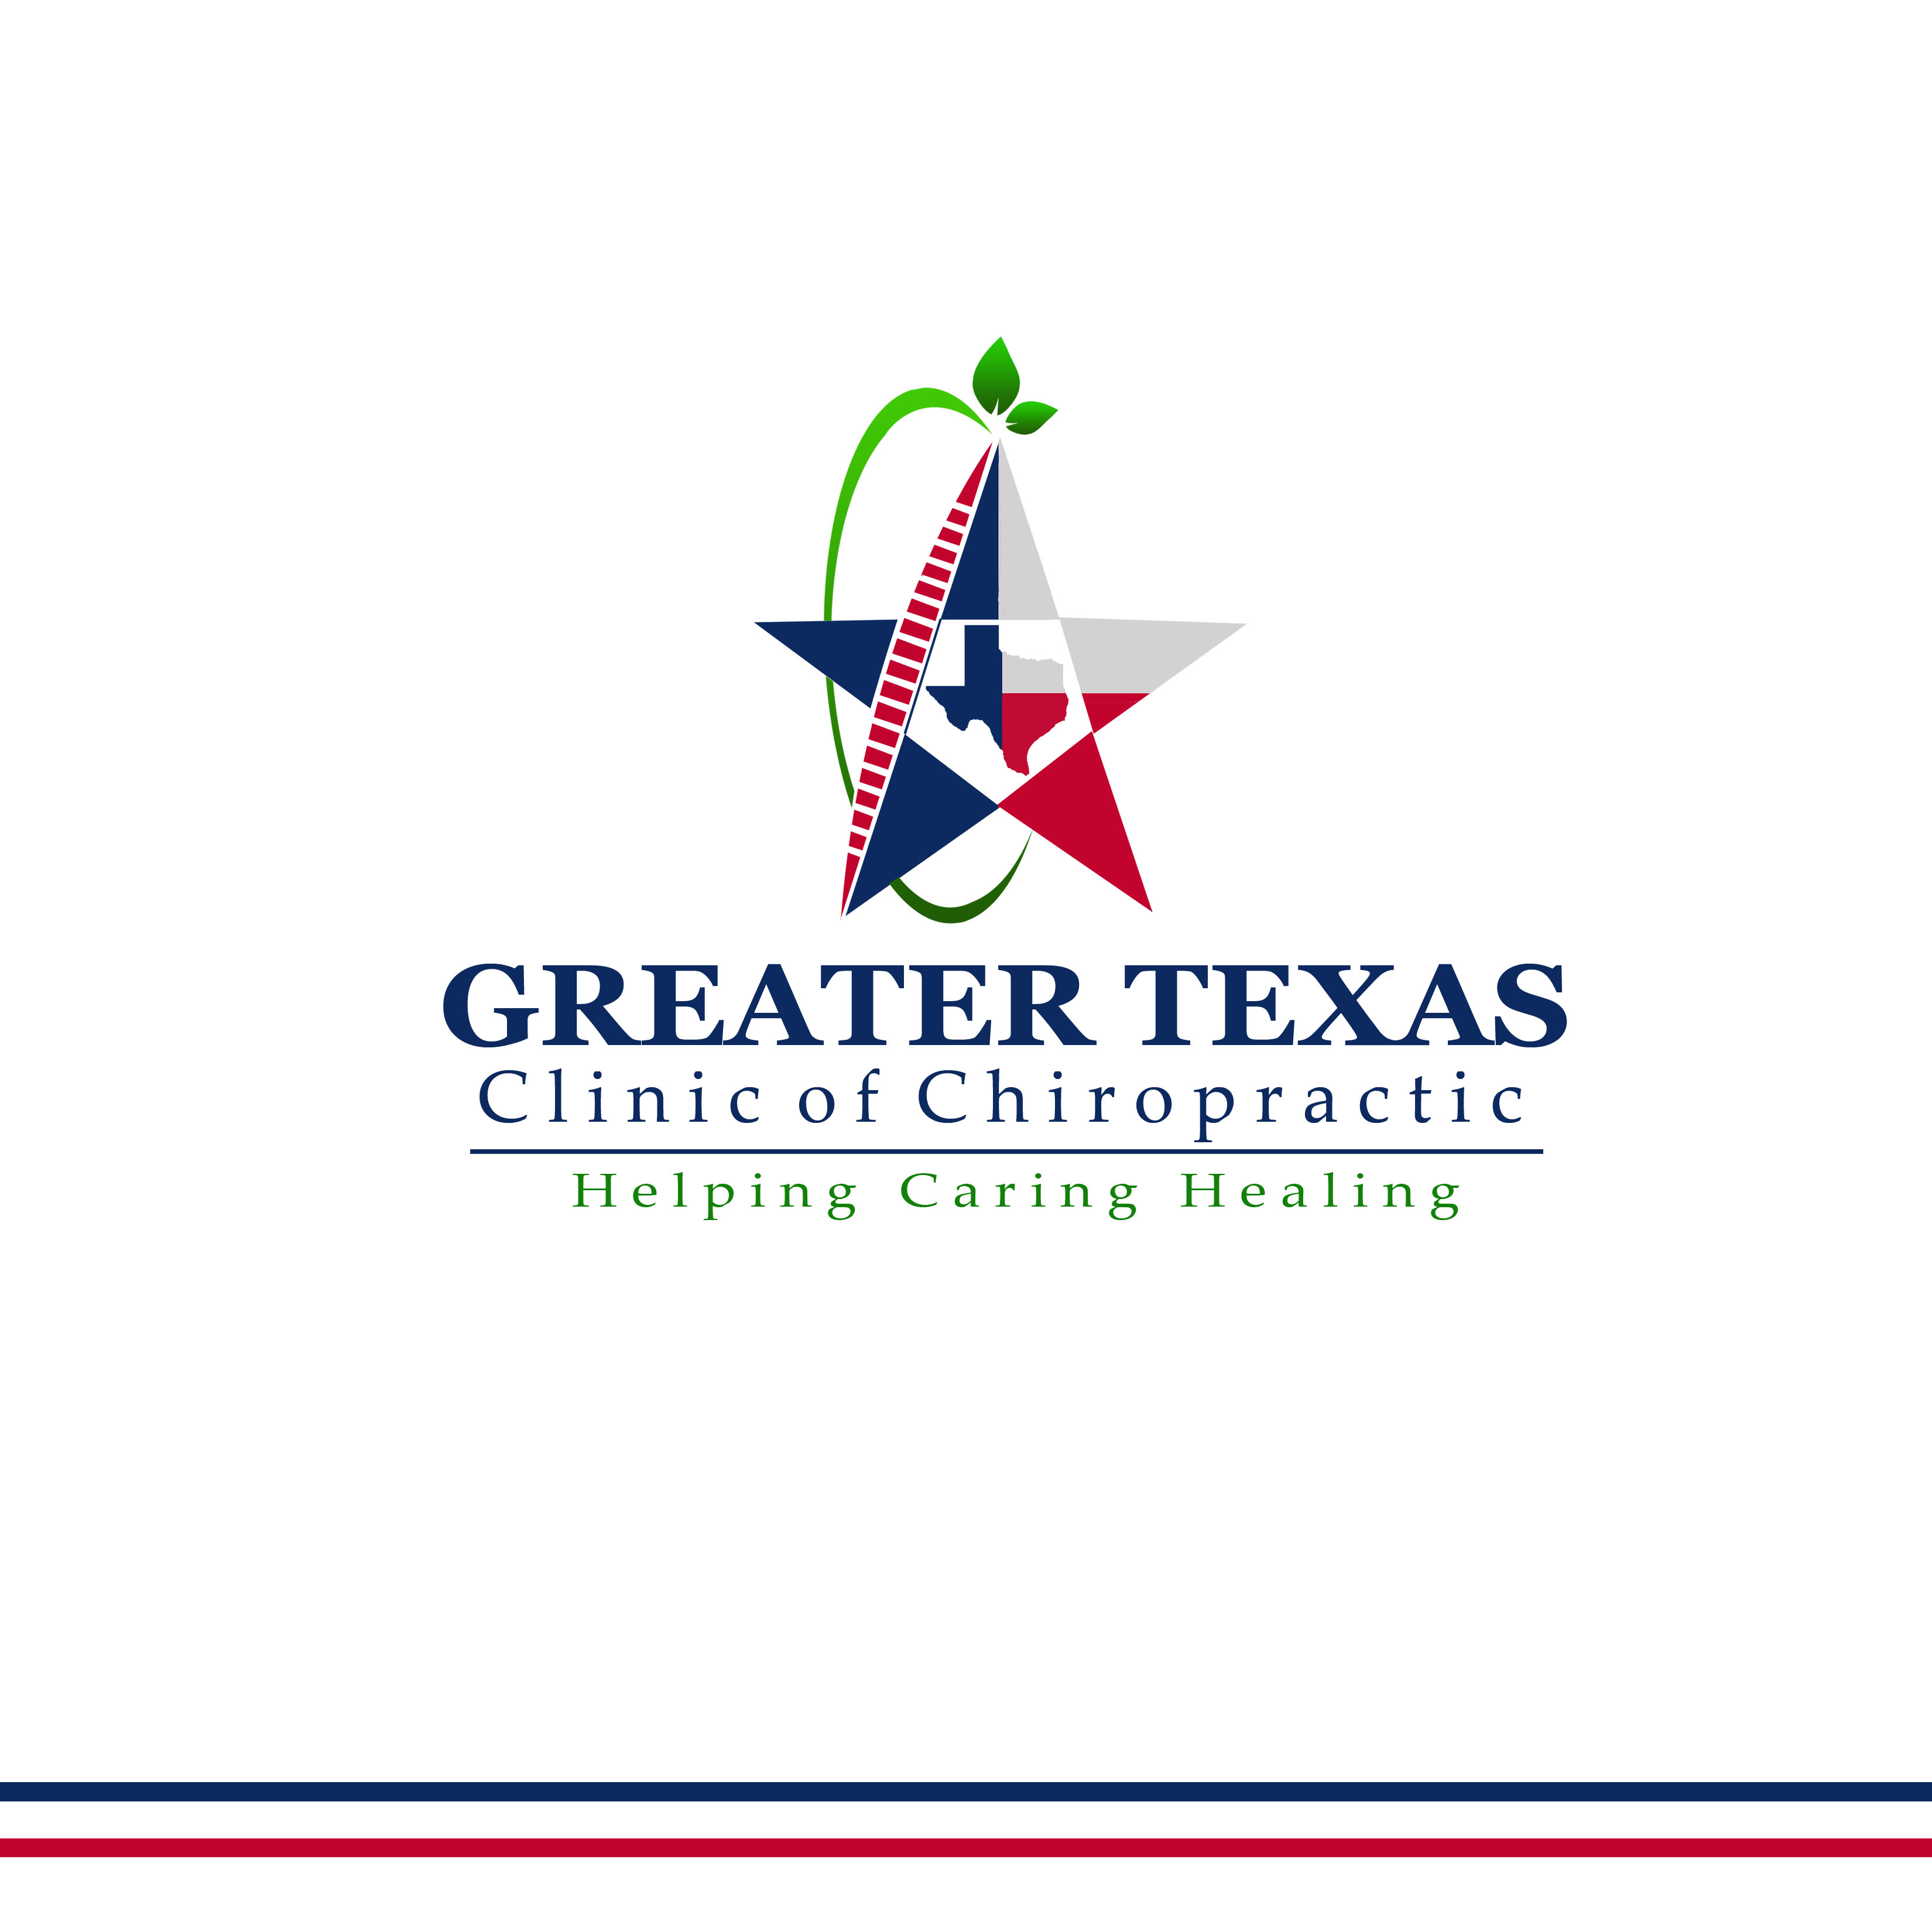 Logo Design by Allan Esclamado - Entry No. 35 in the Logo Design Contest New Logo Design for Greater Texas Clinic of Chiropractic.